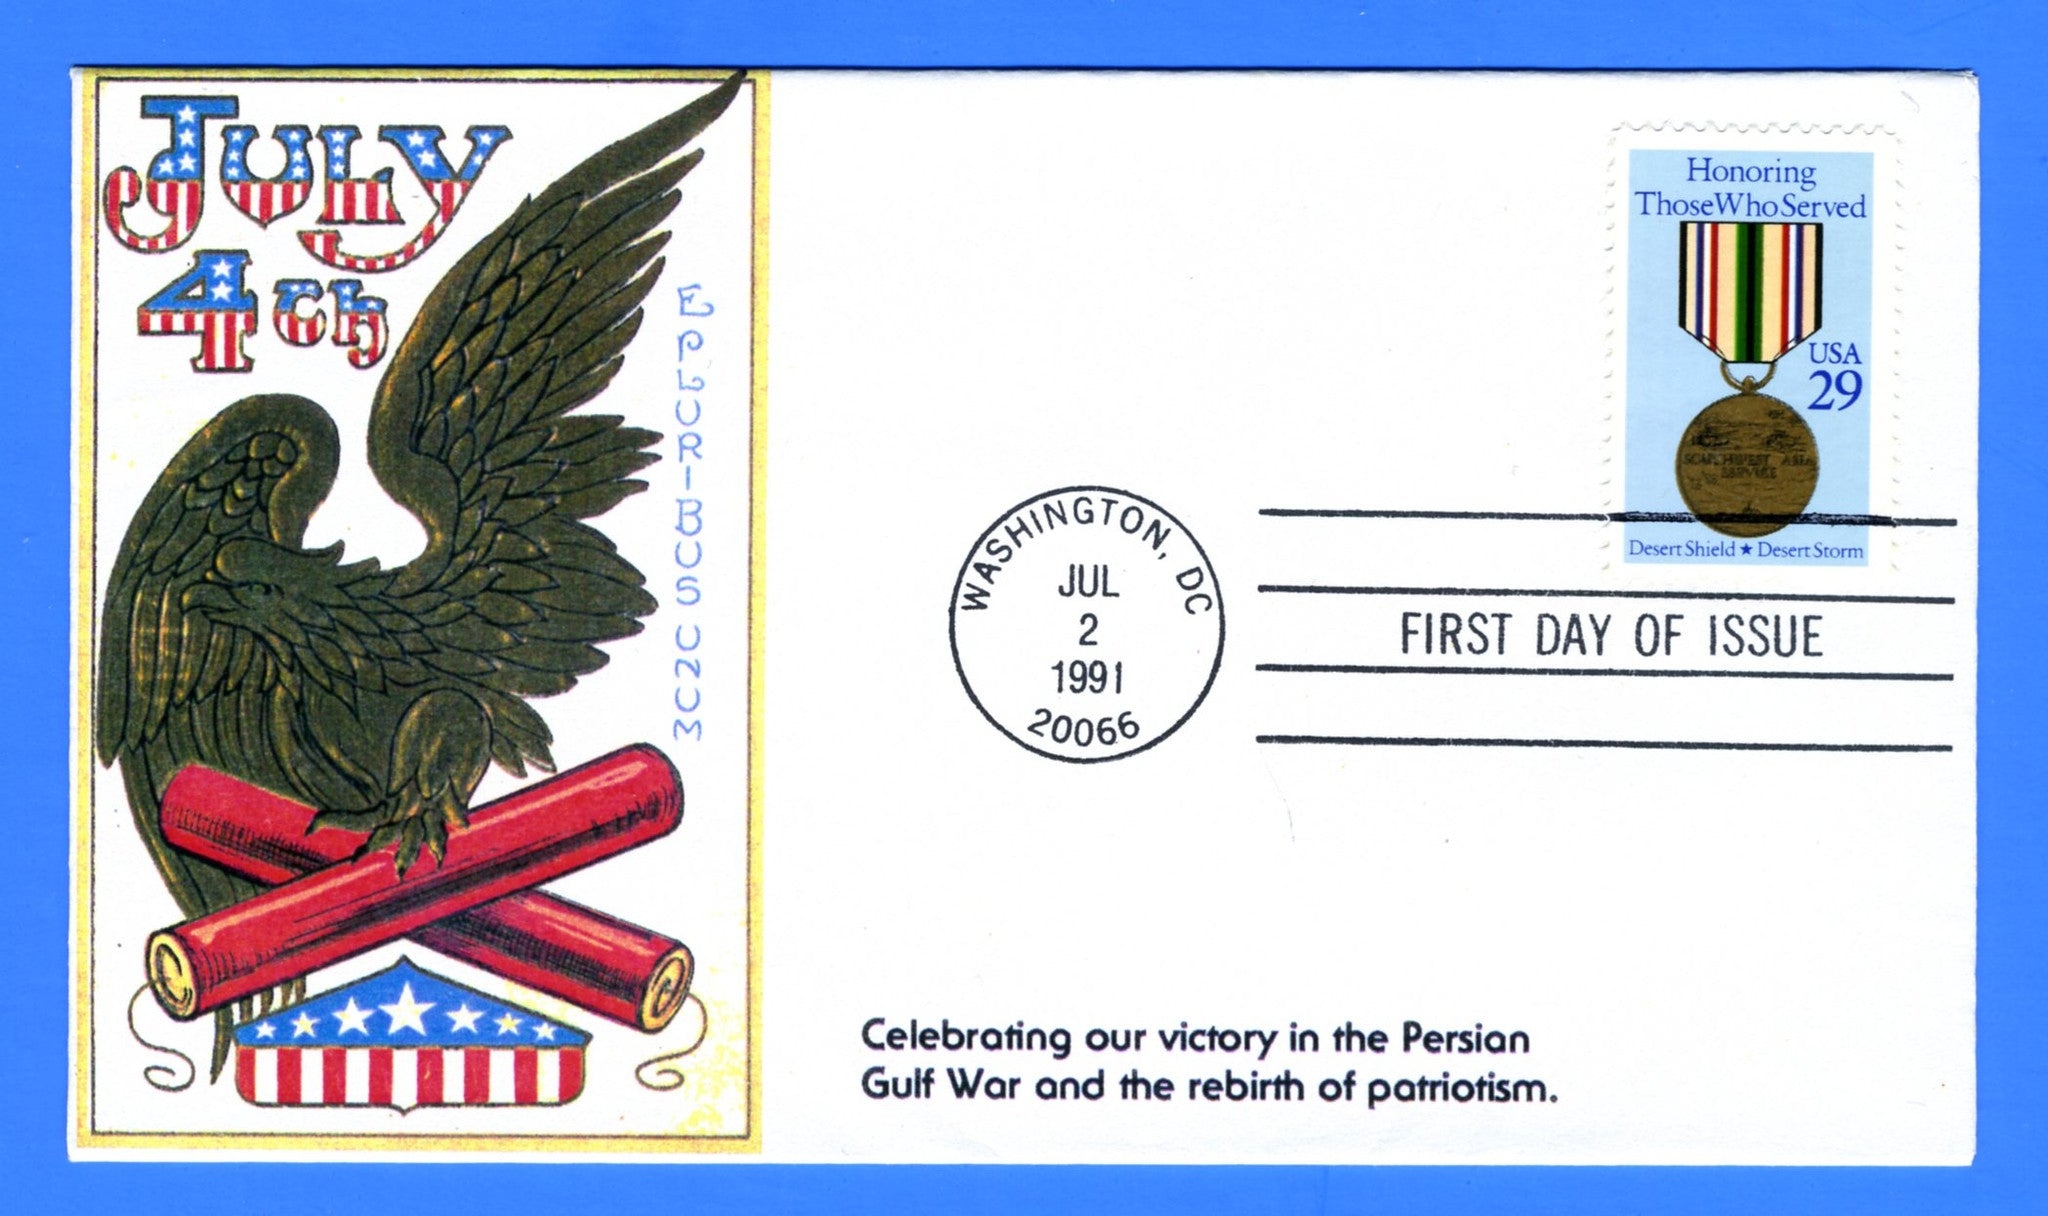 Scott 2551  29c Honoring Those Who Served First Day Cover by KMC Venture